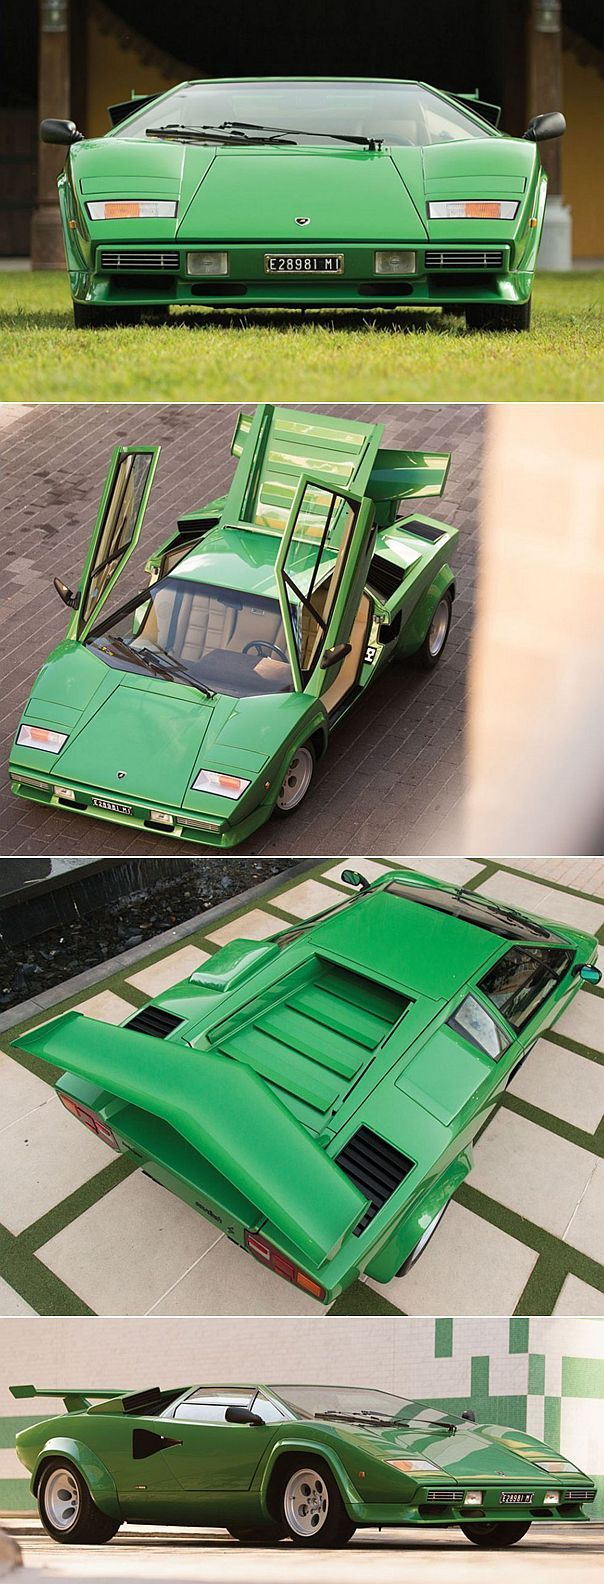 ✨ Lamborghini Countach, 1981 - a flying wedge, in the style of Giorgetto Giugiaro's prototypes of the early 1950s.